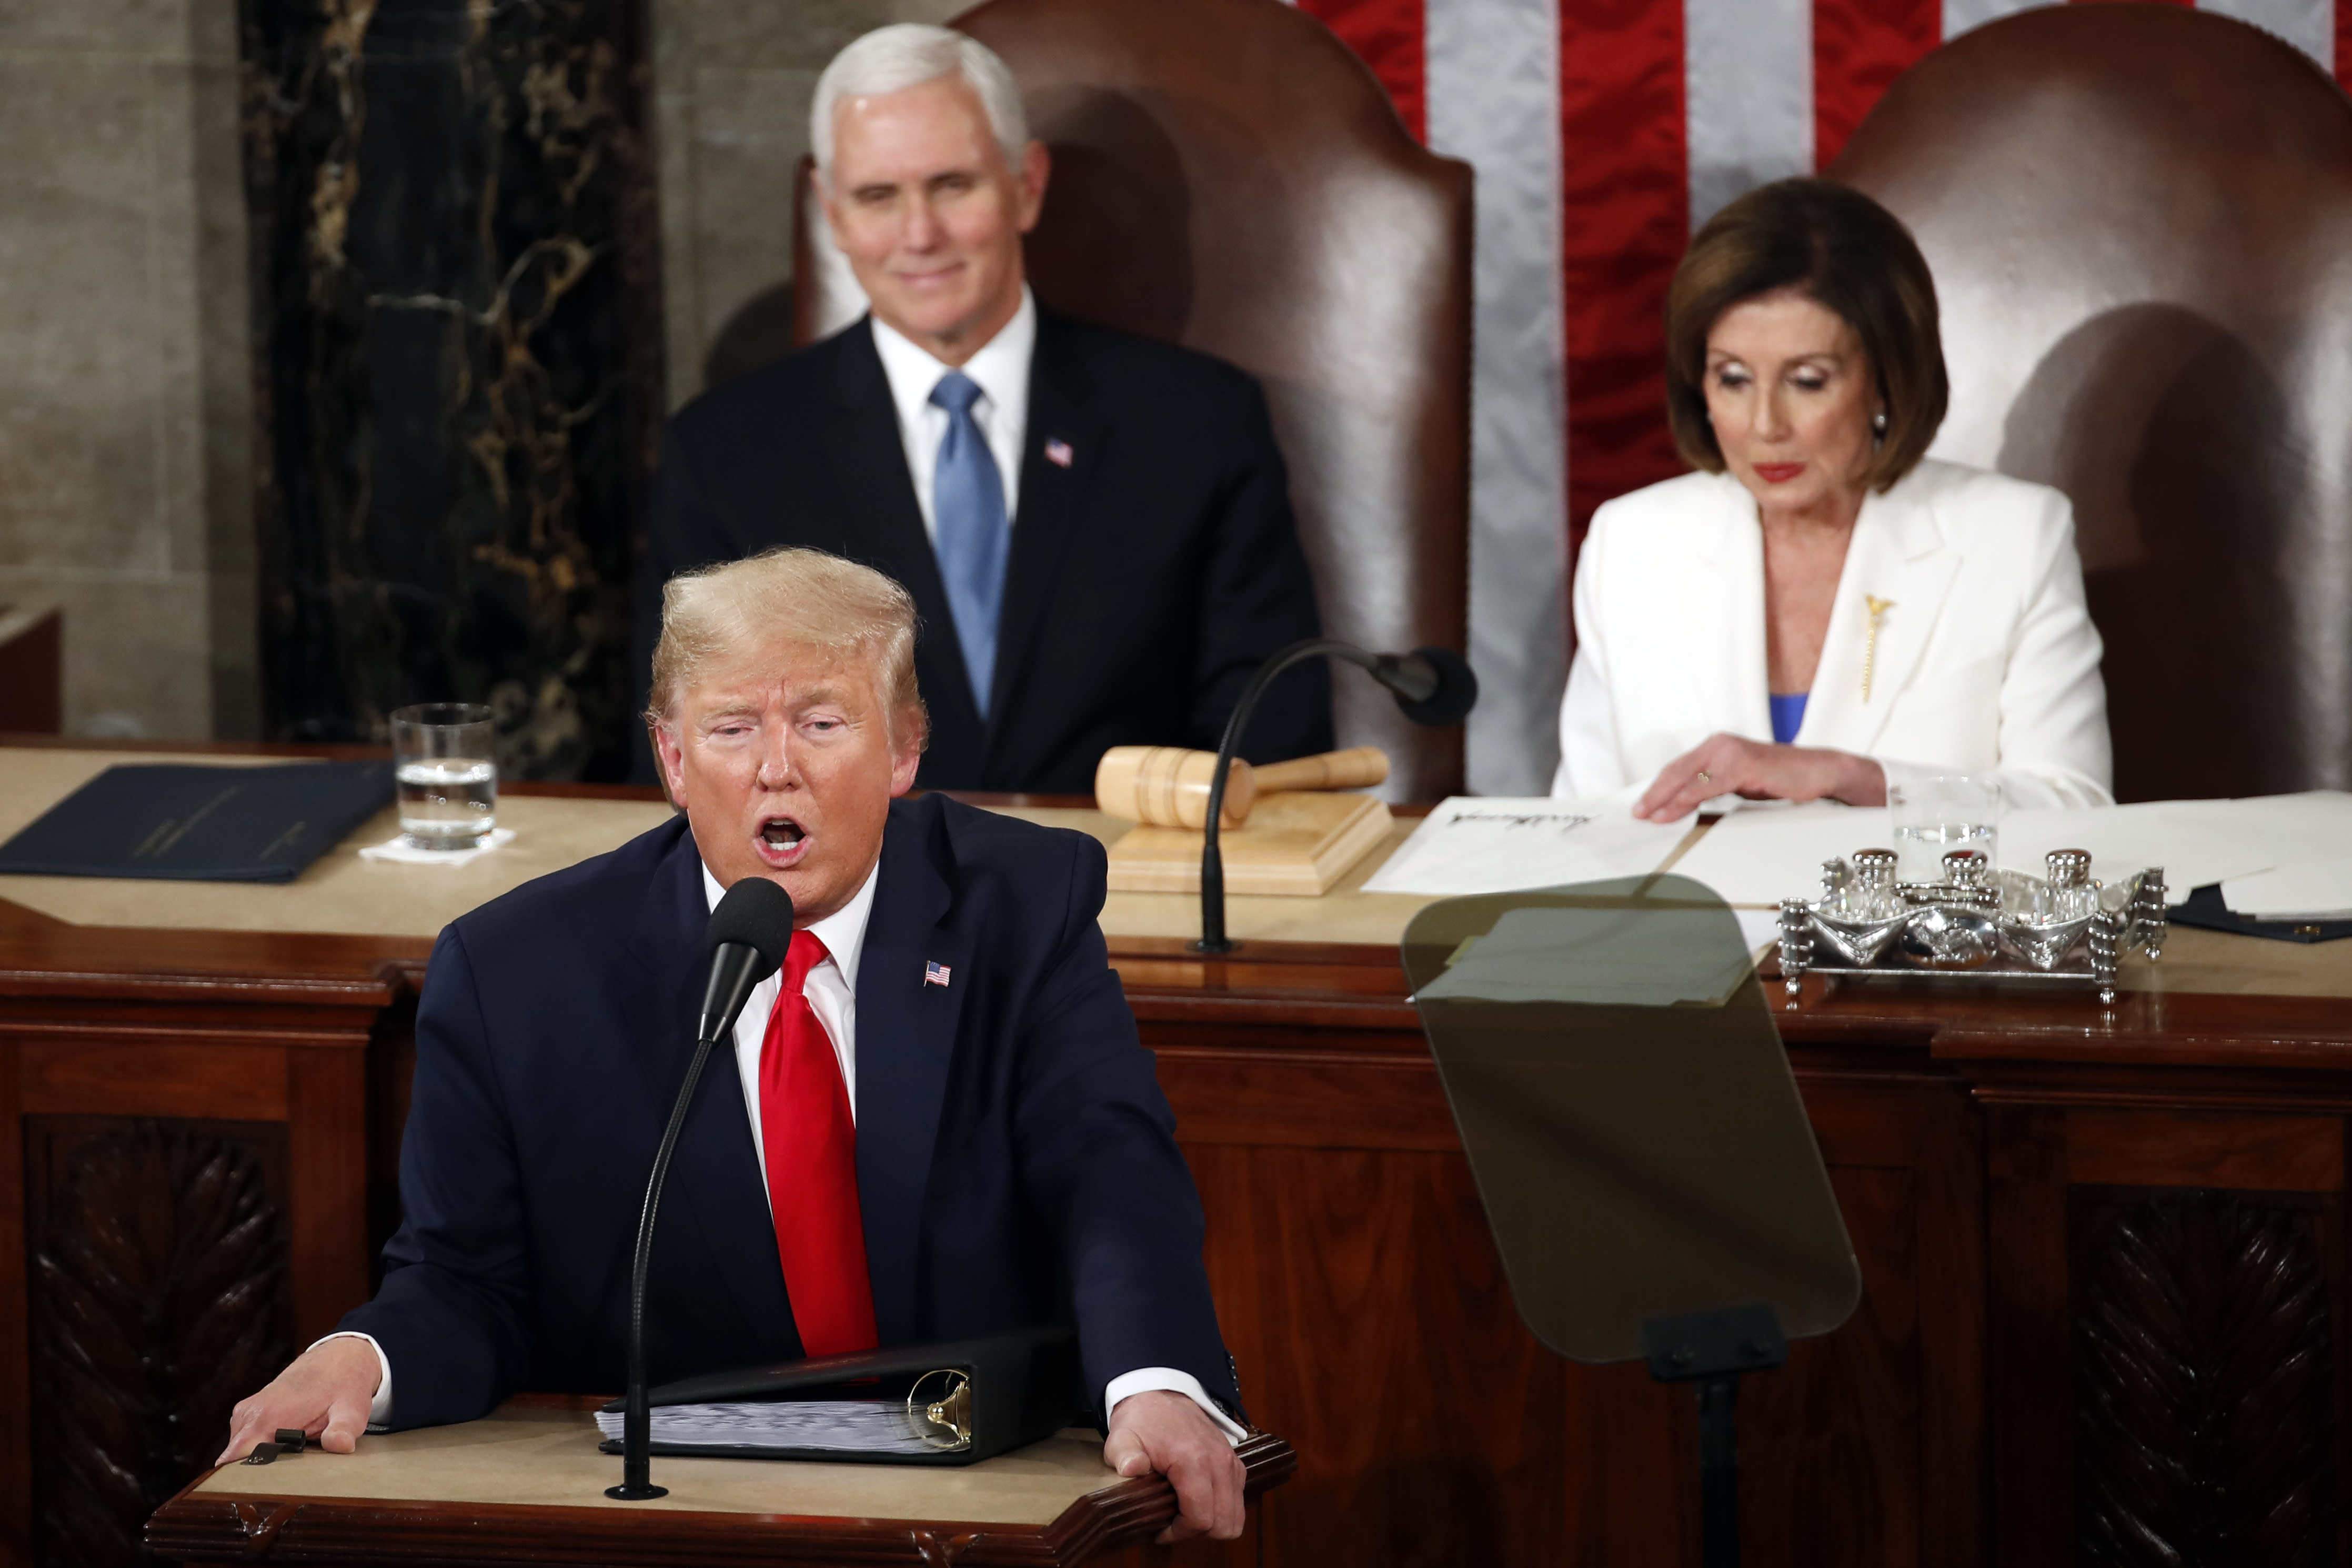 Father of Parkland victim ejected from State of the Union